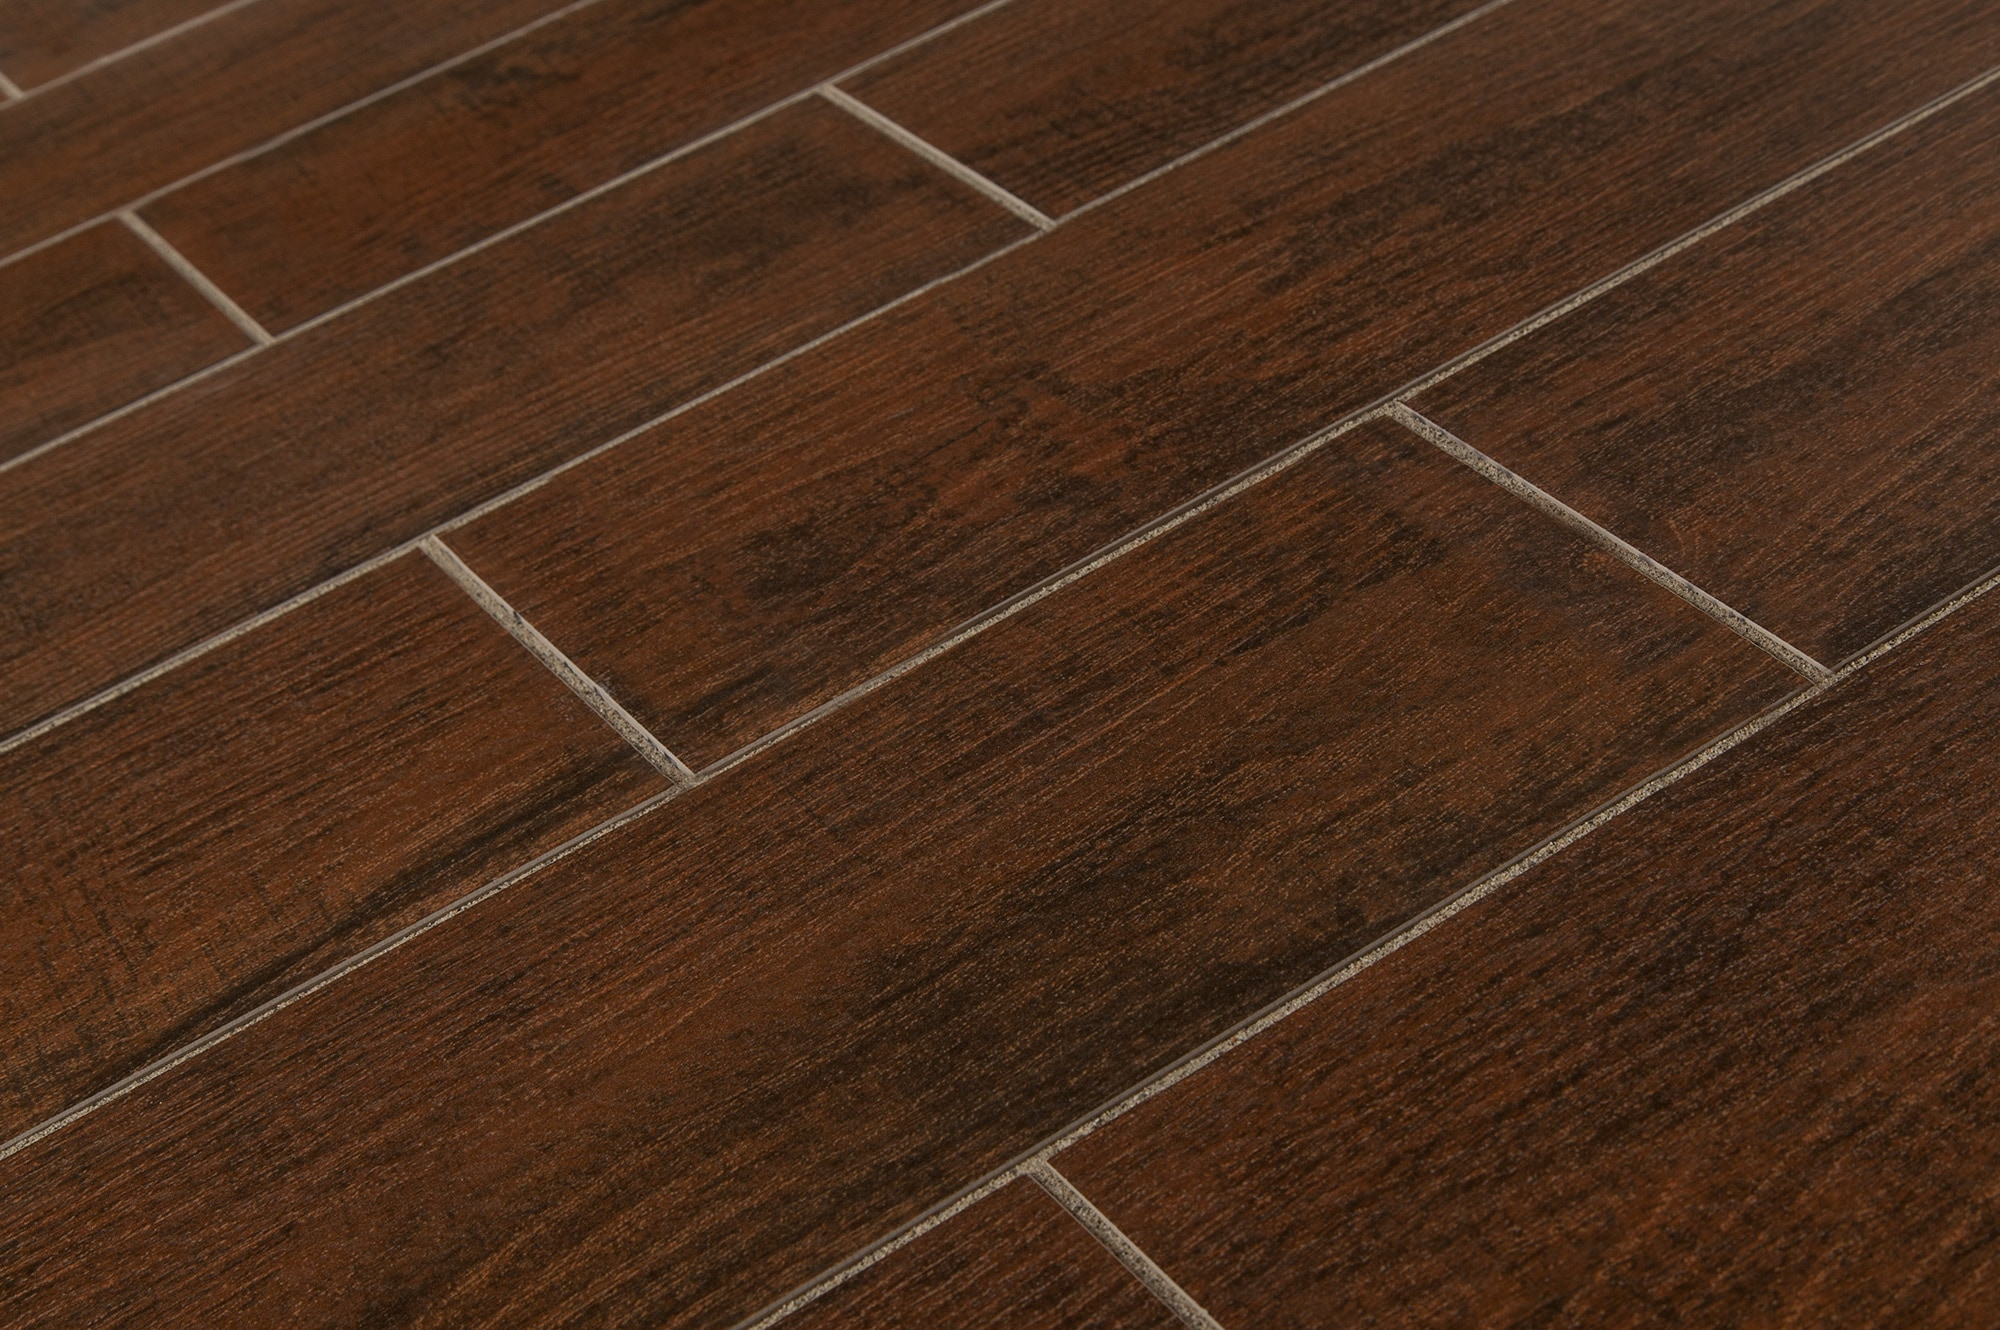 Salerno porcelain tile timber stone collection hd for Tile and hardwood floor